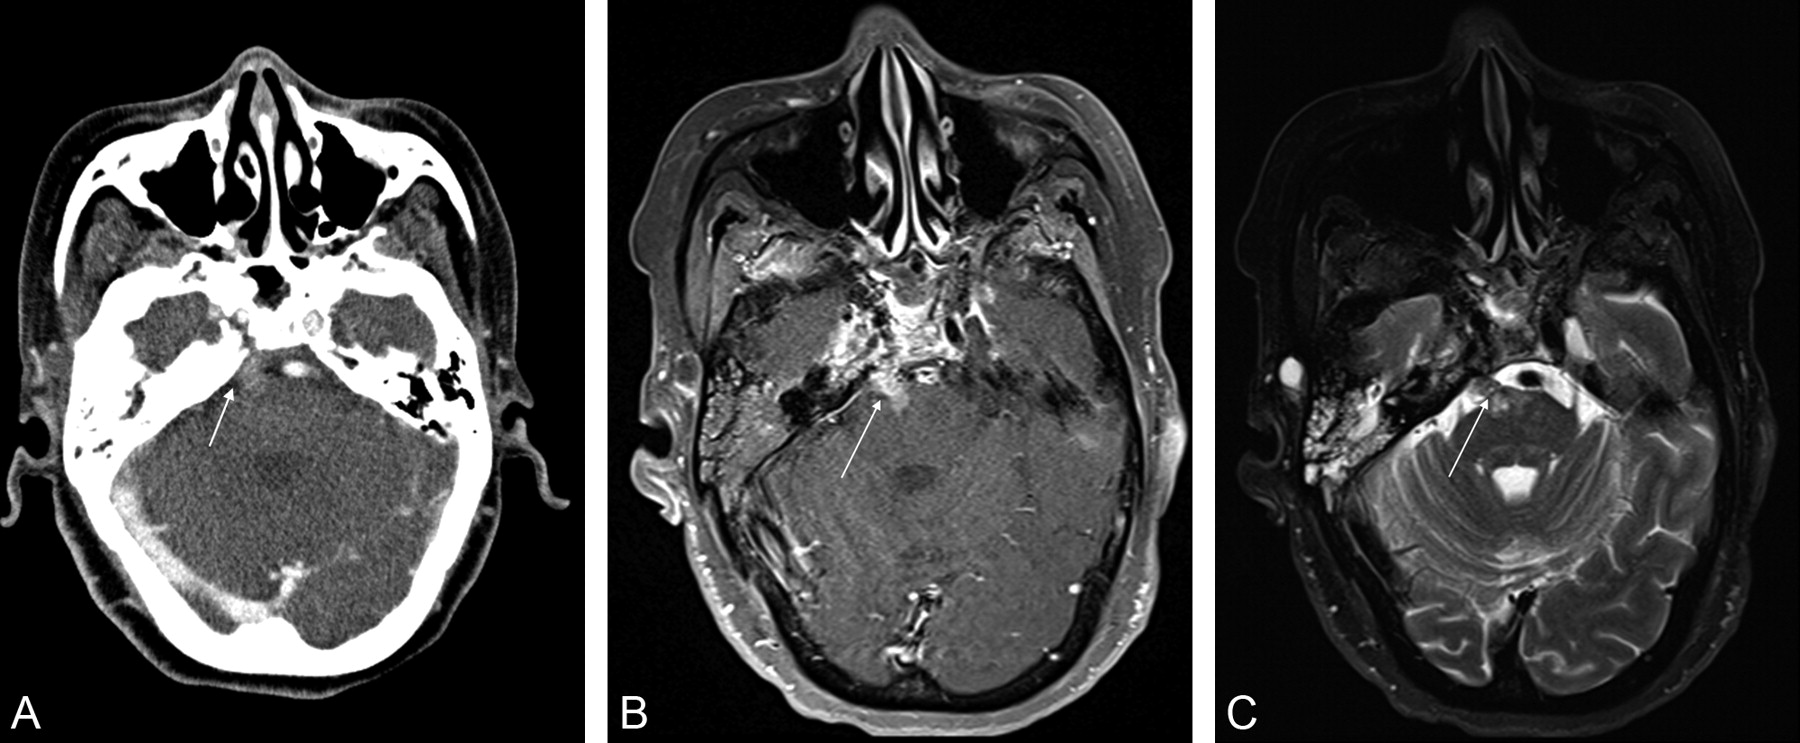 Perineural Tumor Spread along the Sixth Cranial Nerve: CT and MR ...